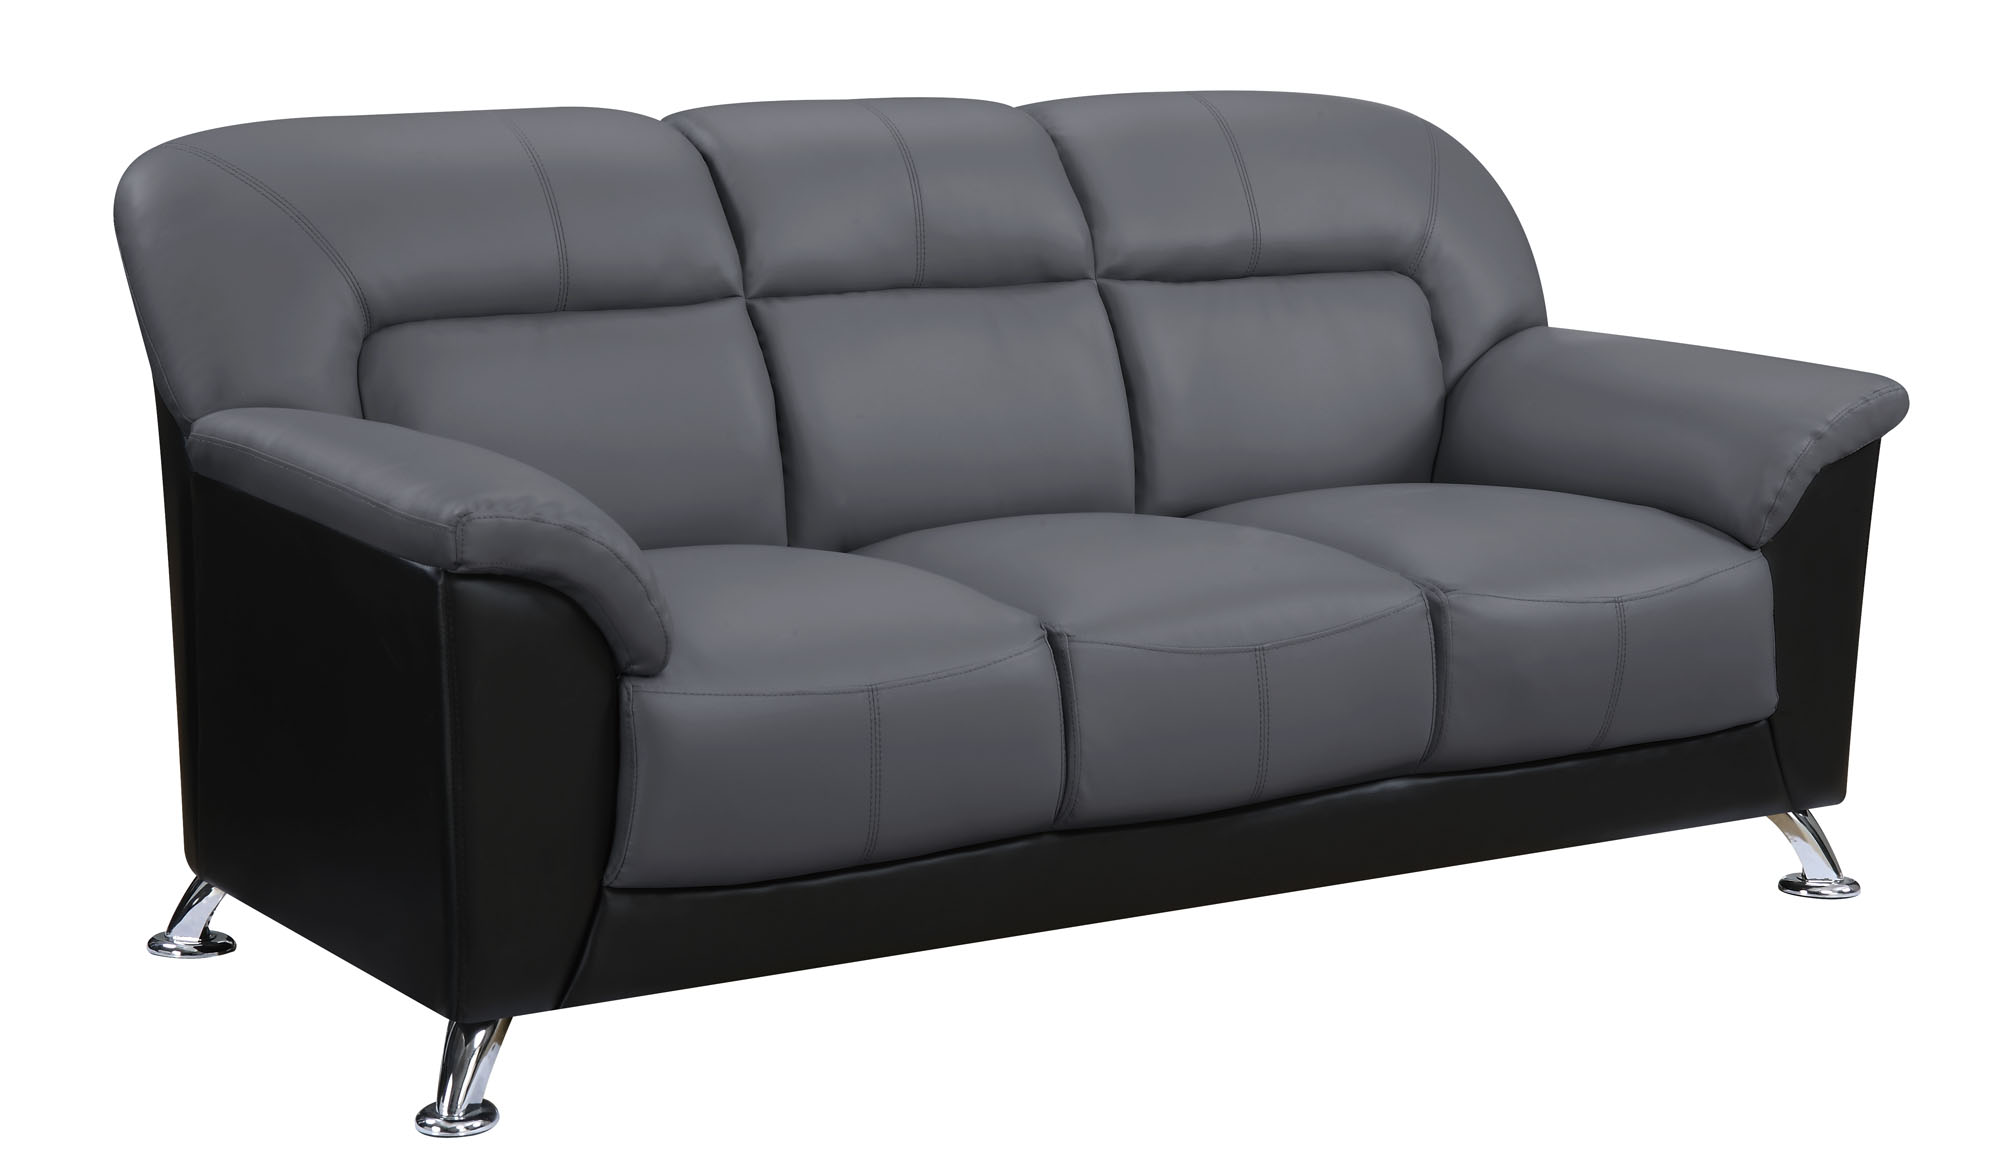 Sensational U9102 Dark Grey Black Vinyl Sofa By Global Furniture Dailytribune Chair Design For Home Dailytribuneorg